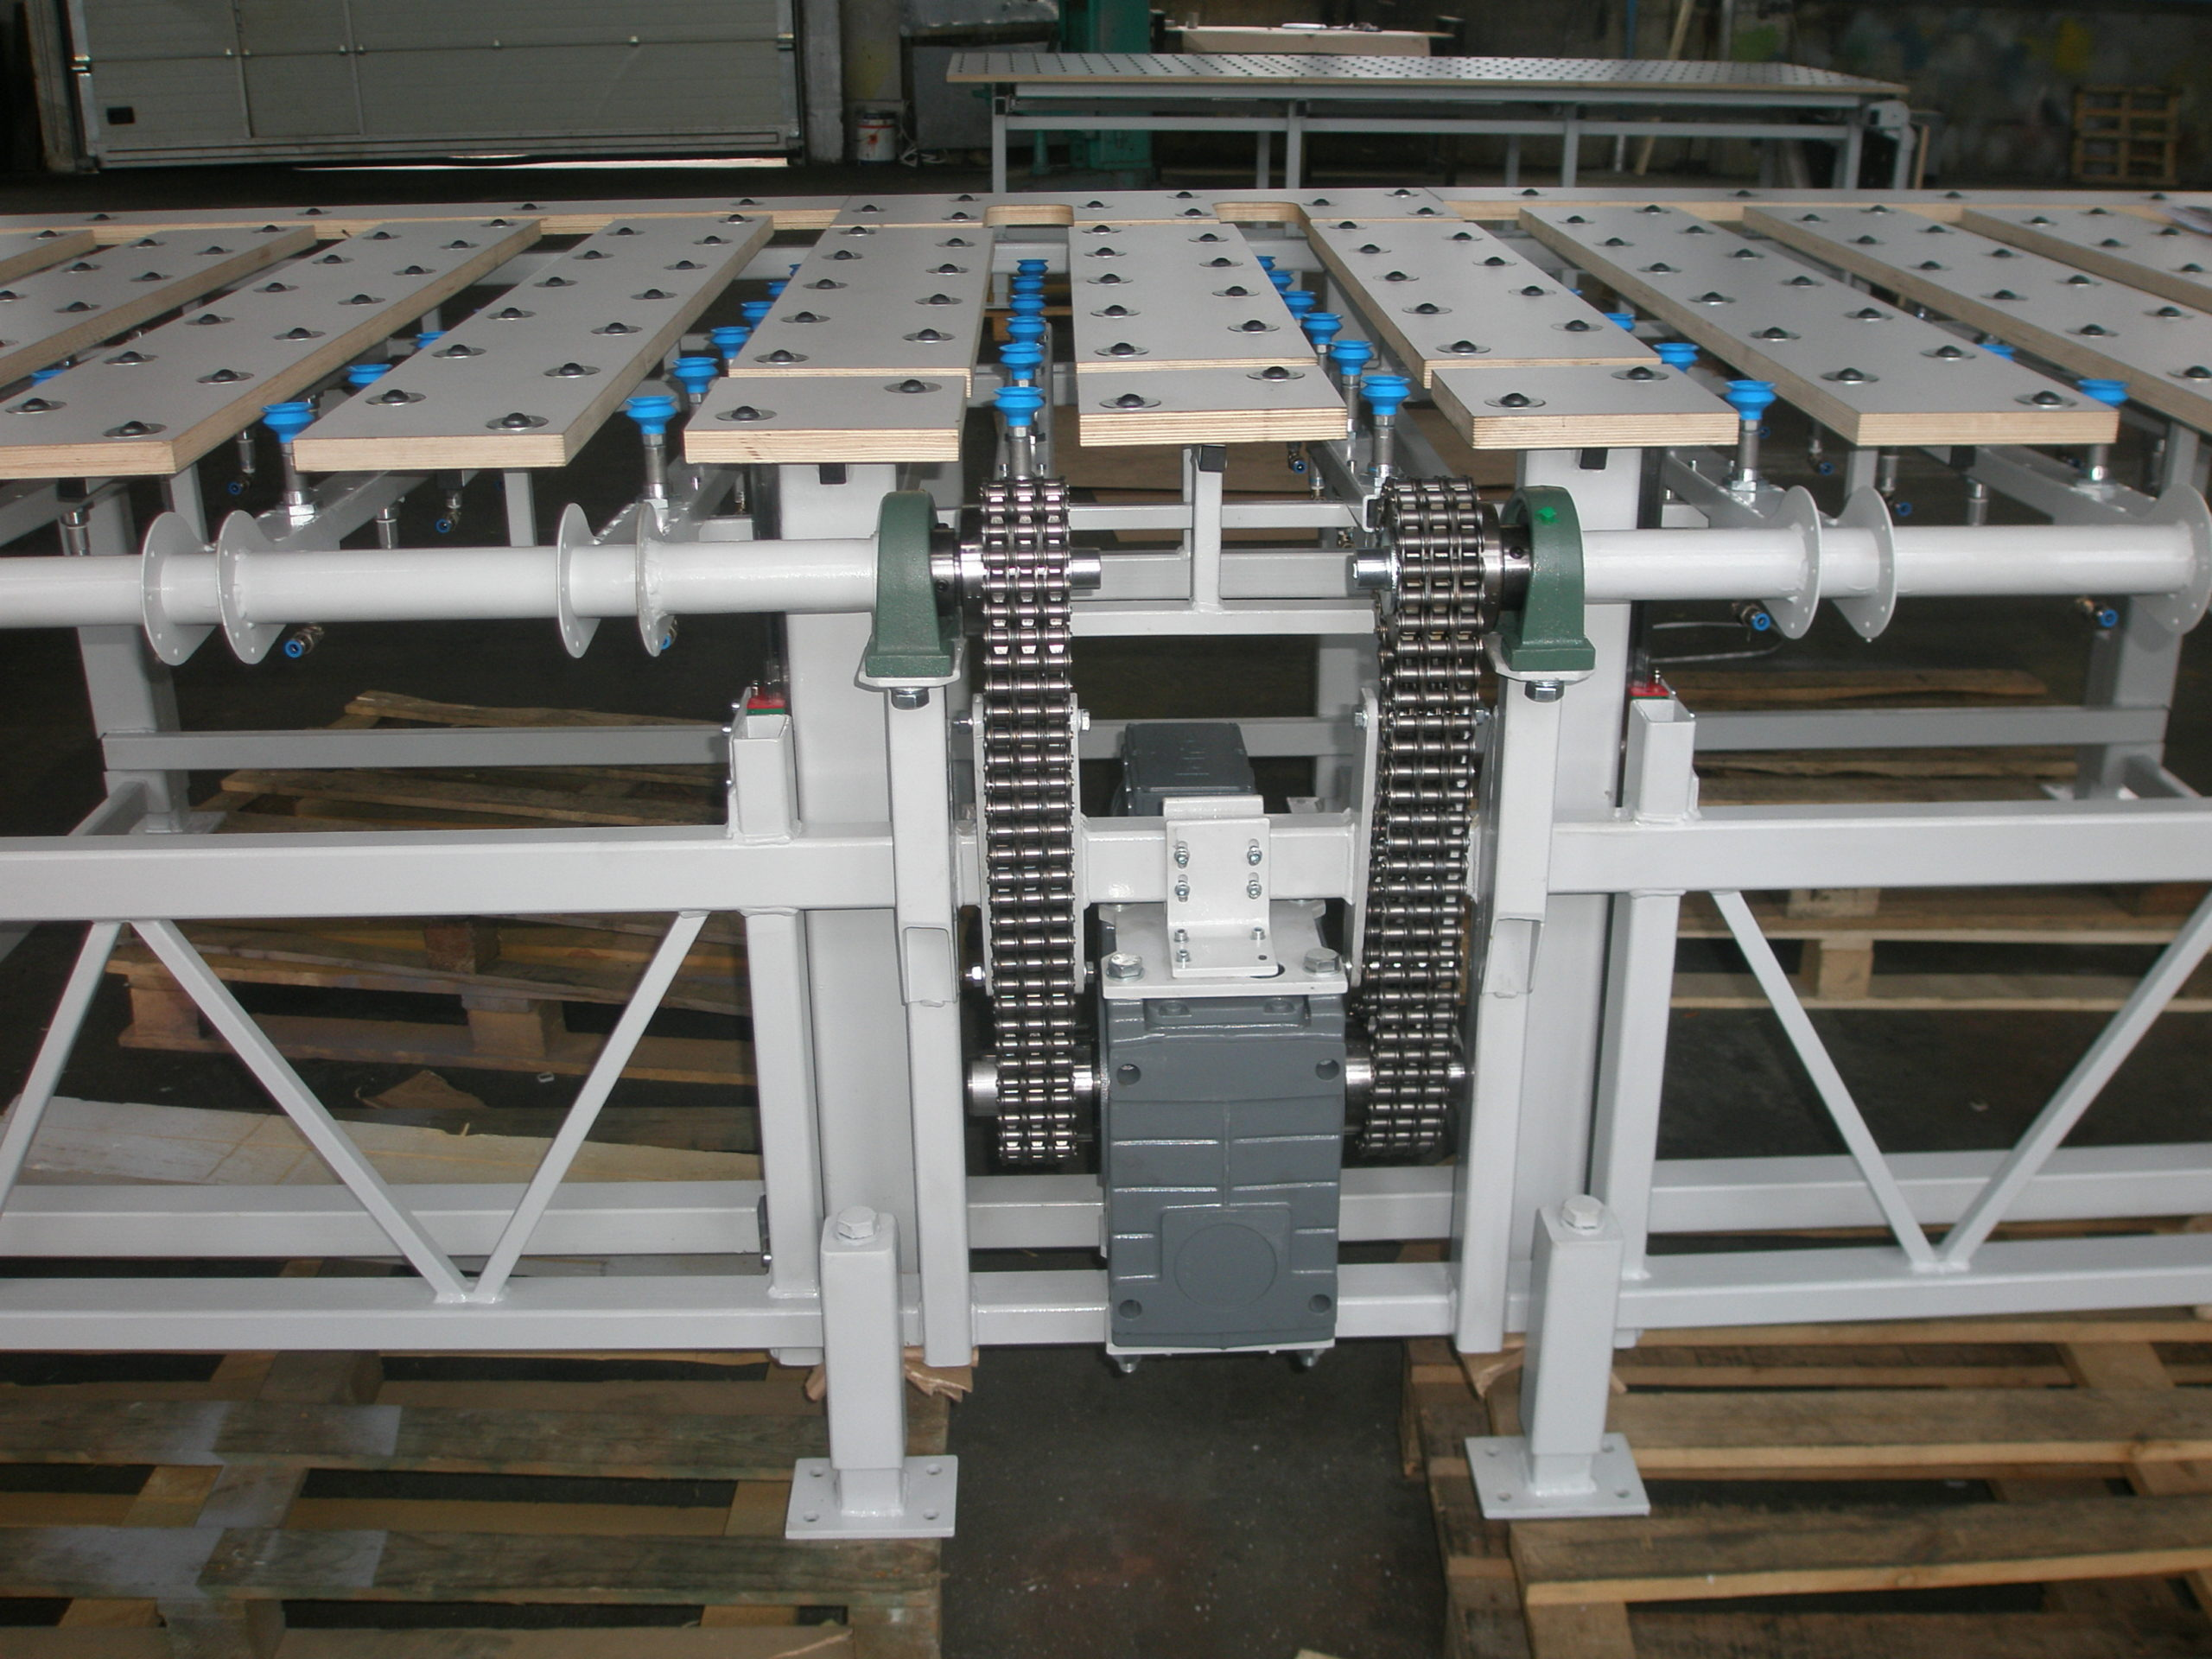 Product assembly and packing